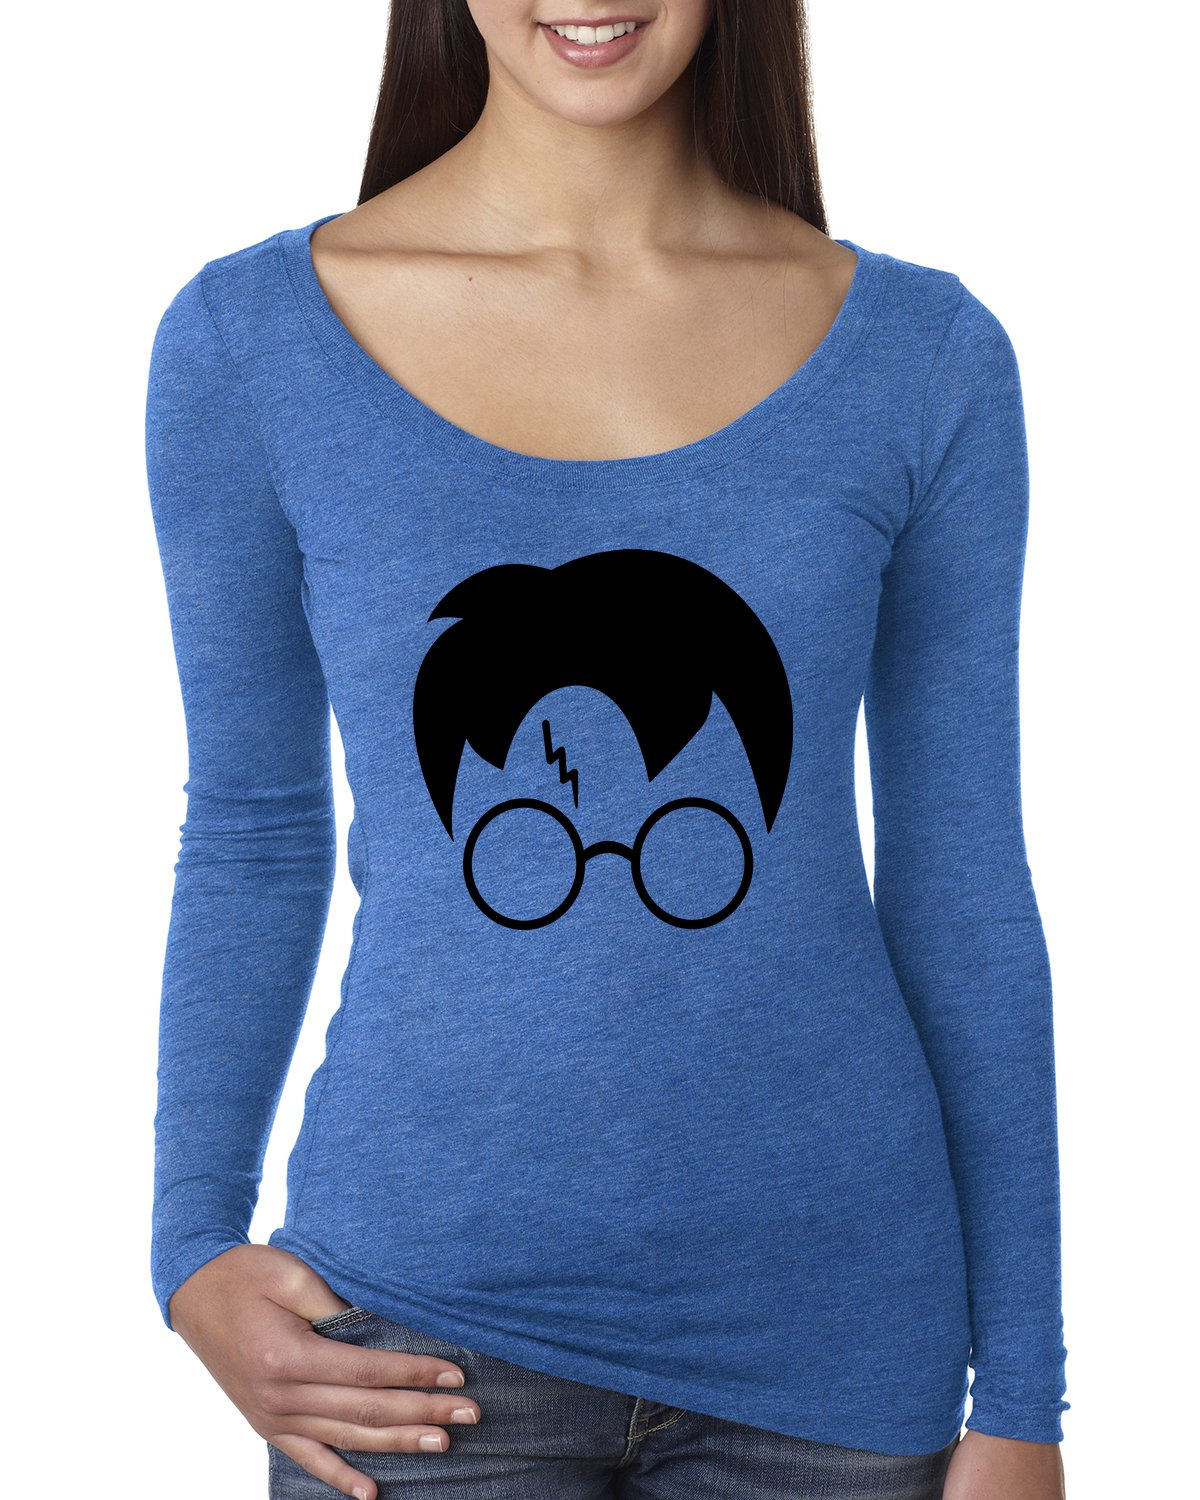 Harry Potter Glasses Lightning Bolt Scar Hair | Womens Pop Culture Scoop Long Sleeve Top Graphic Shirt, Vintage Royal Black, 2XL